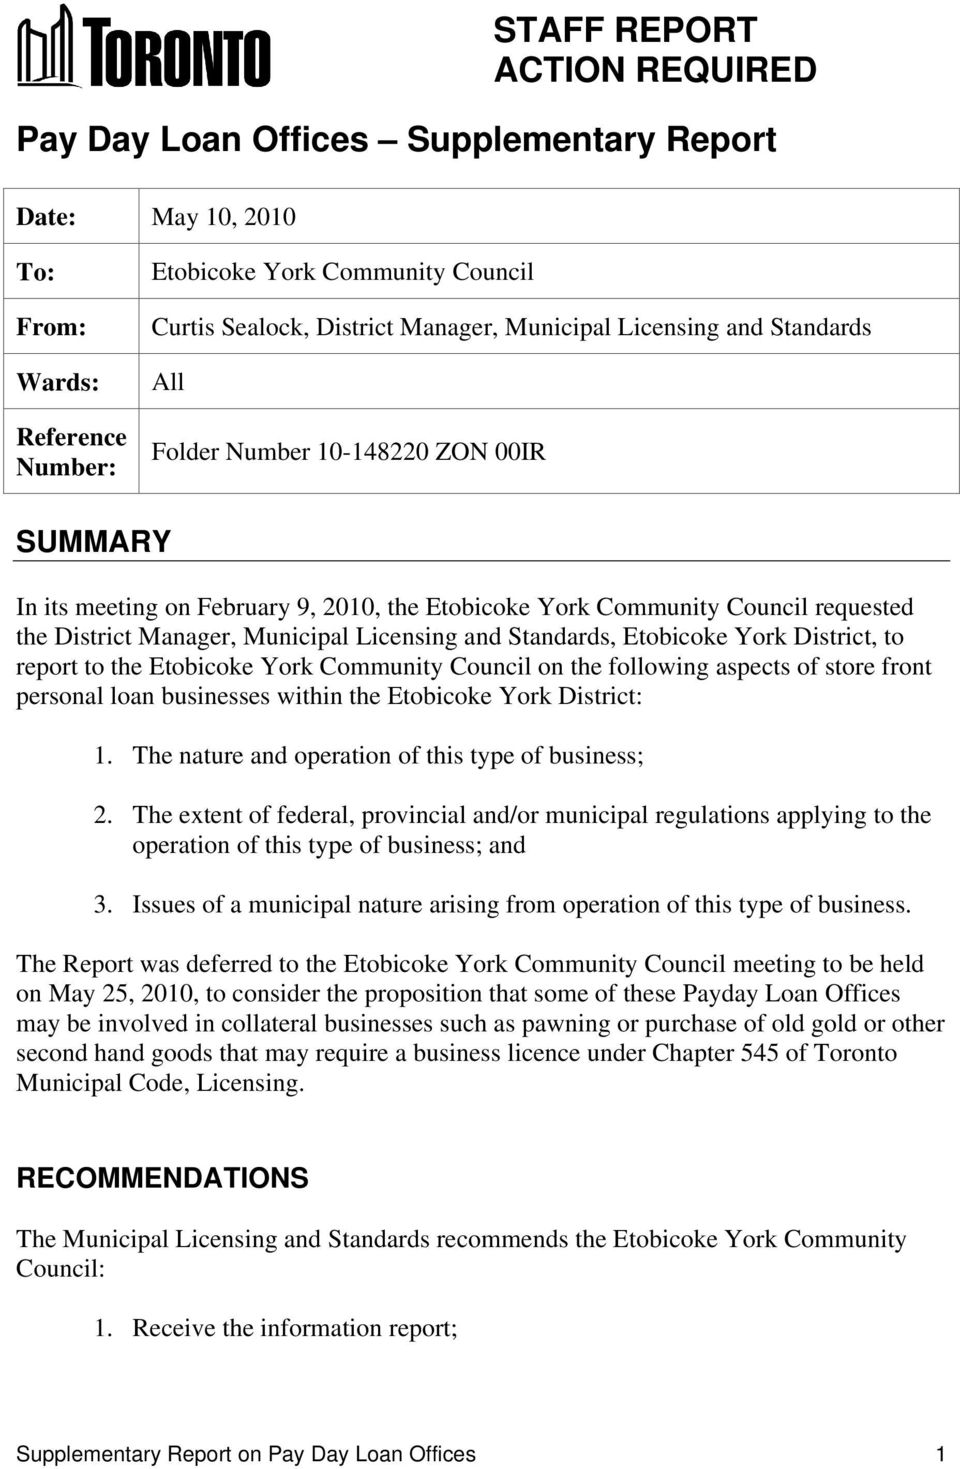 Licensing and Standards, Etobicoke York District, to report to the Etobicoke York Community Council on the following aspects of store front personal loan businesses within the Etobicoke York